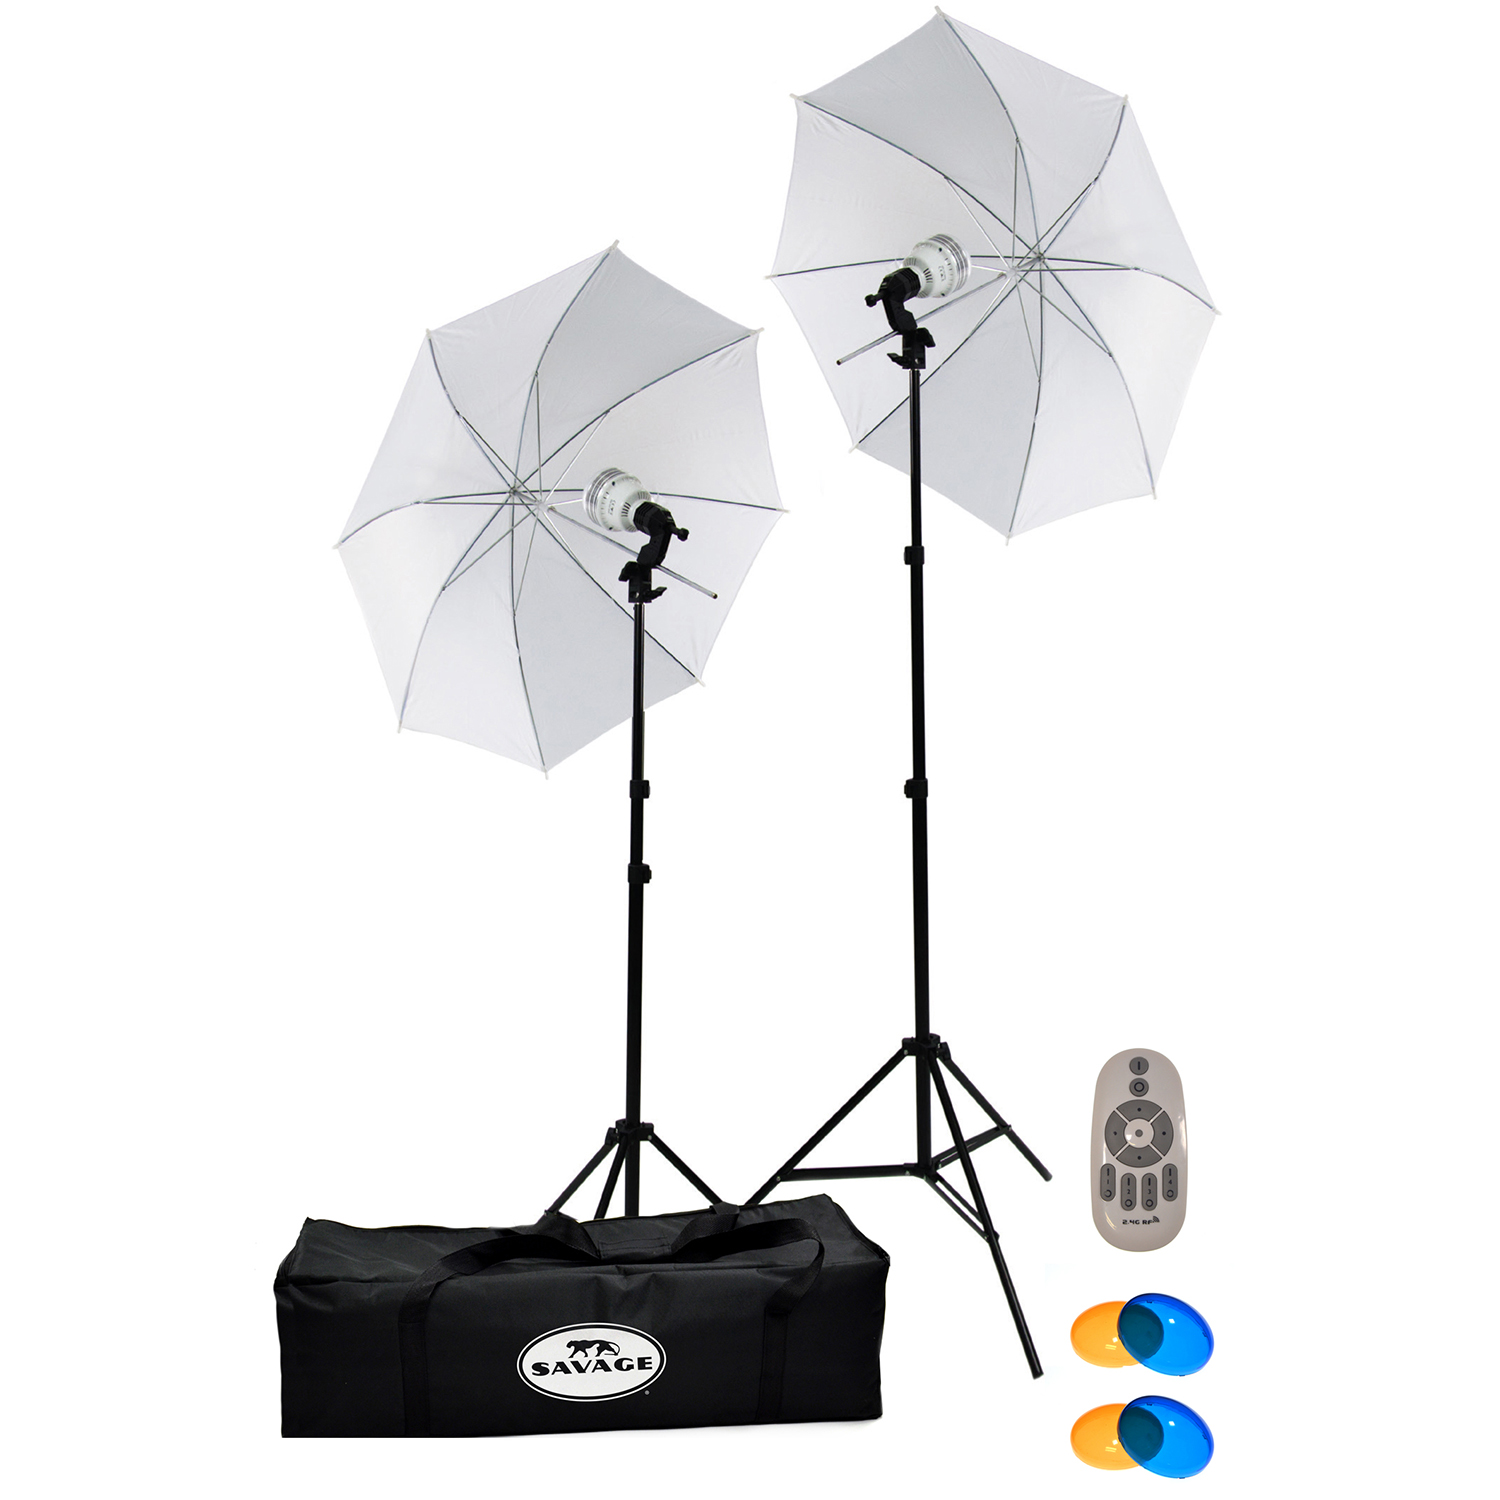 savage 700 watt led studio light kit